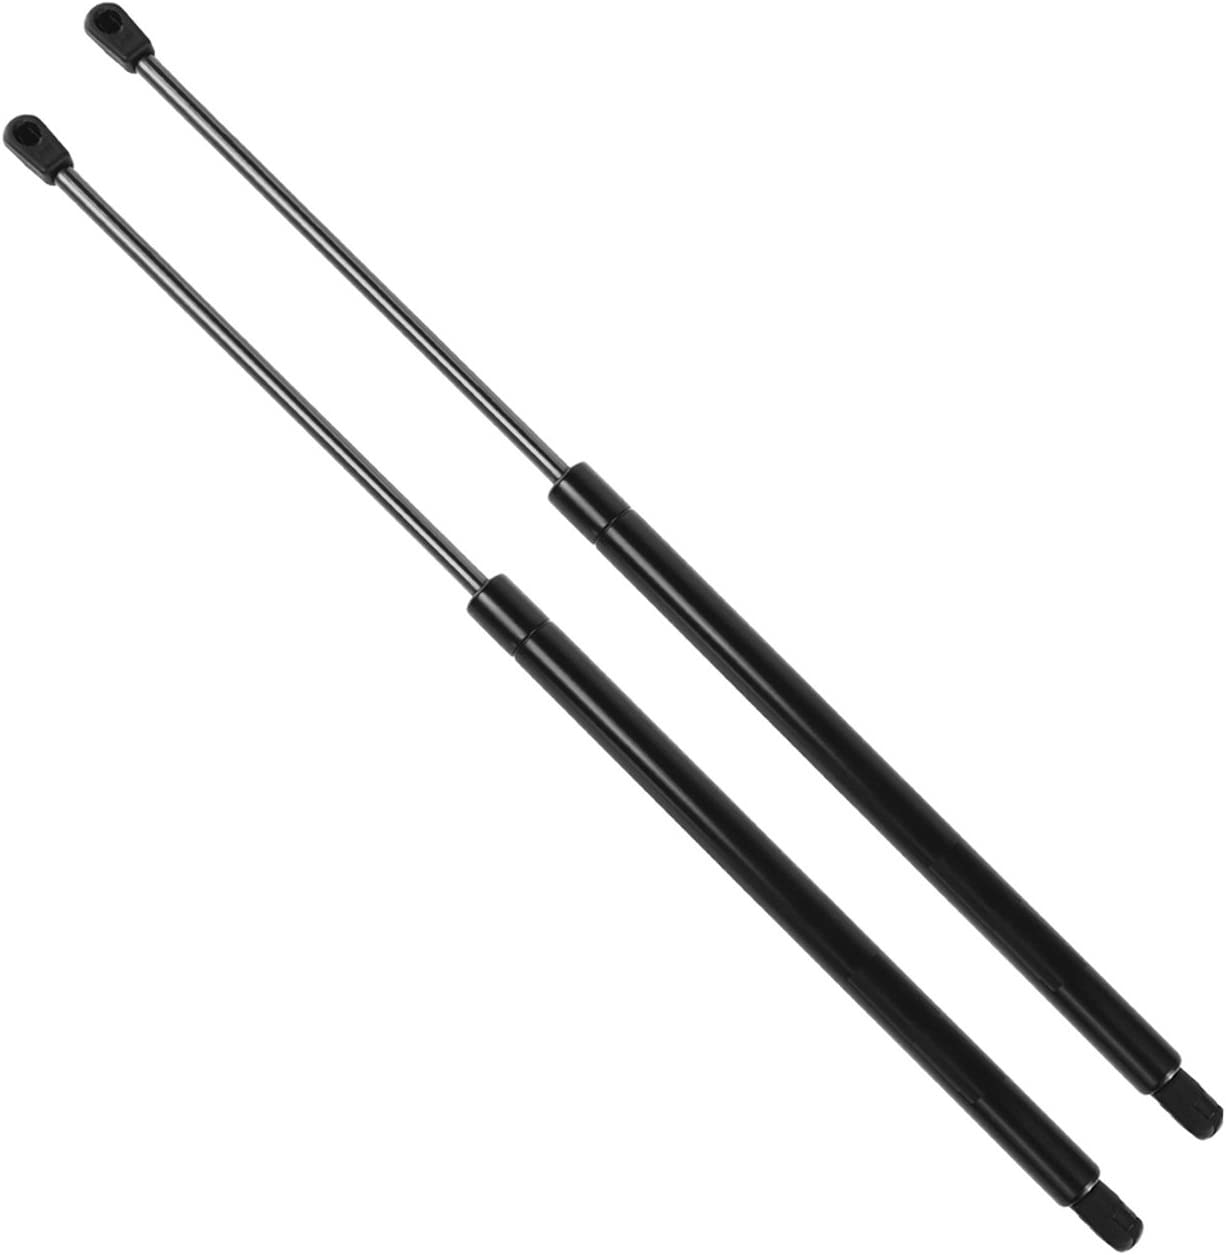 Rear Window Glass Lift Supports Shocks Gas Springs 4249 for 1997-2006 Jeep Wrangler W//Hardtop,Pack of 2